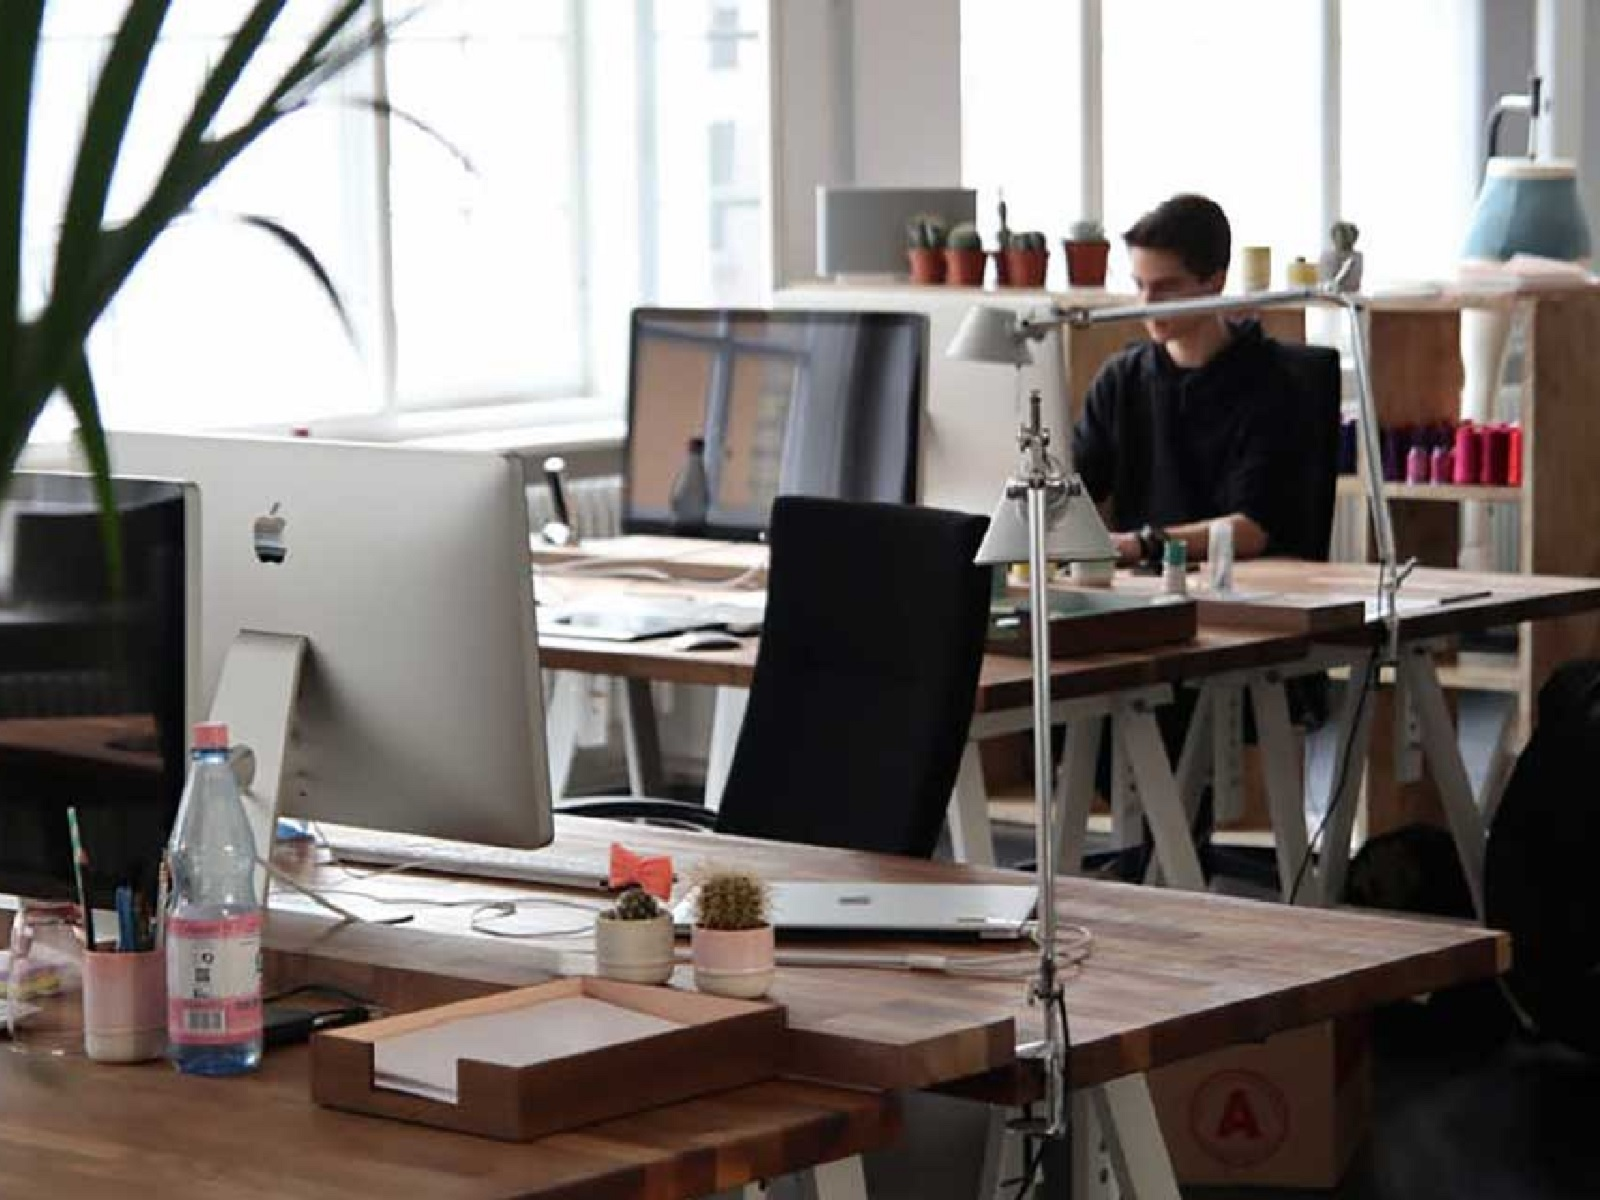 Most SMEs seek sub-three-year office leases or serviced offices